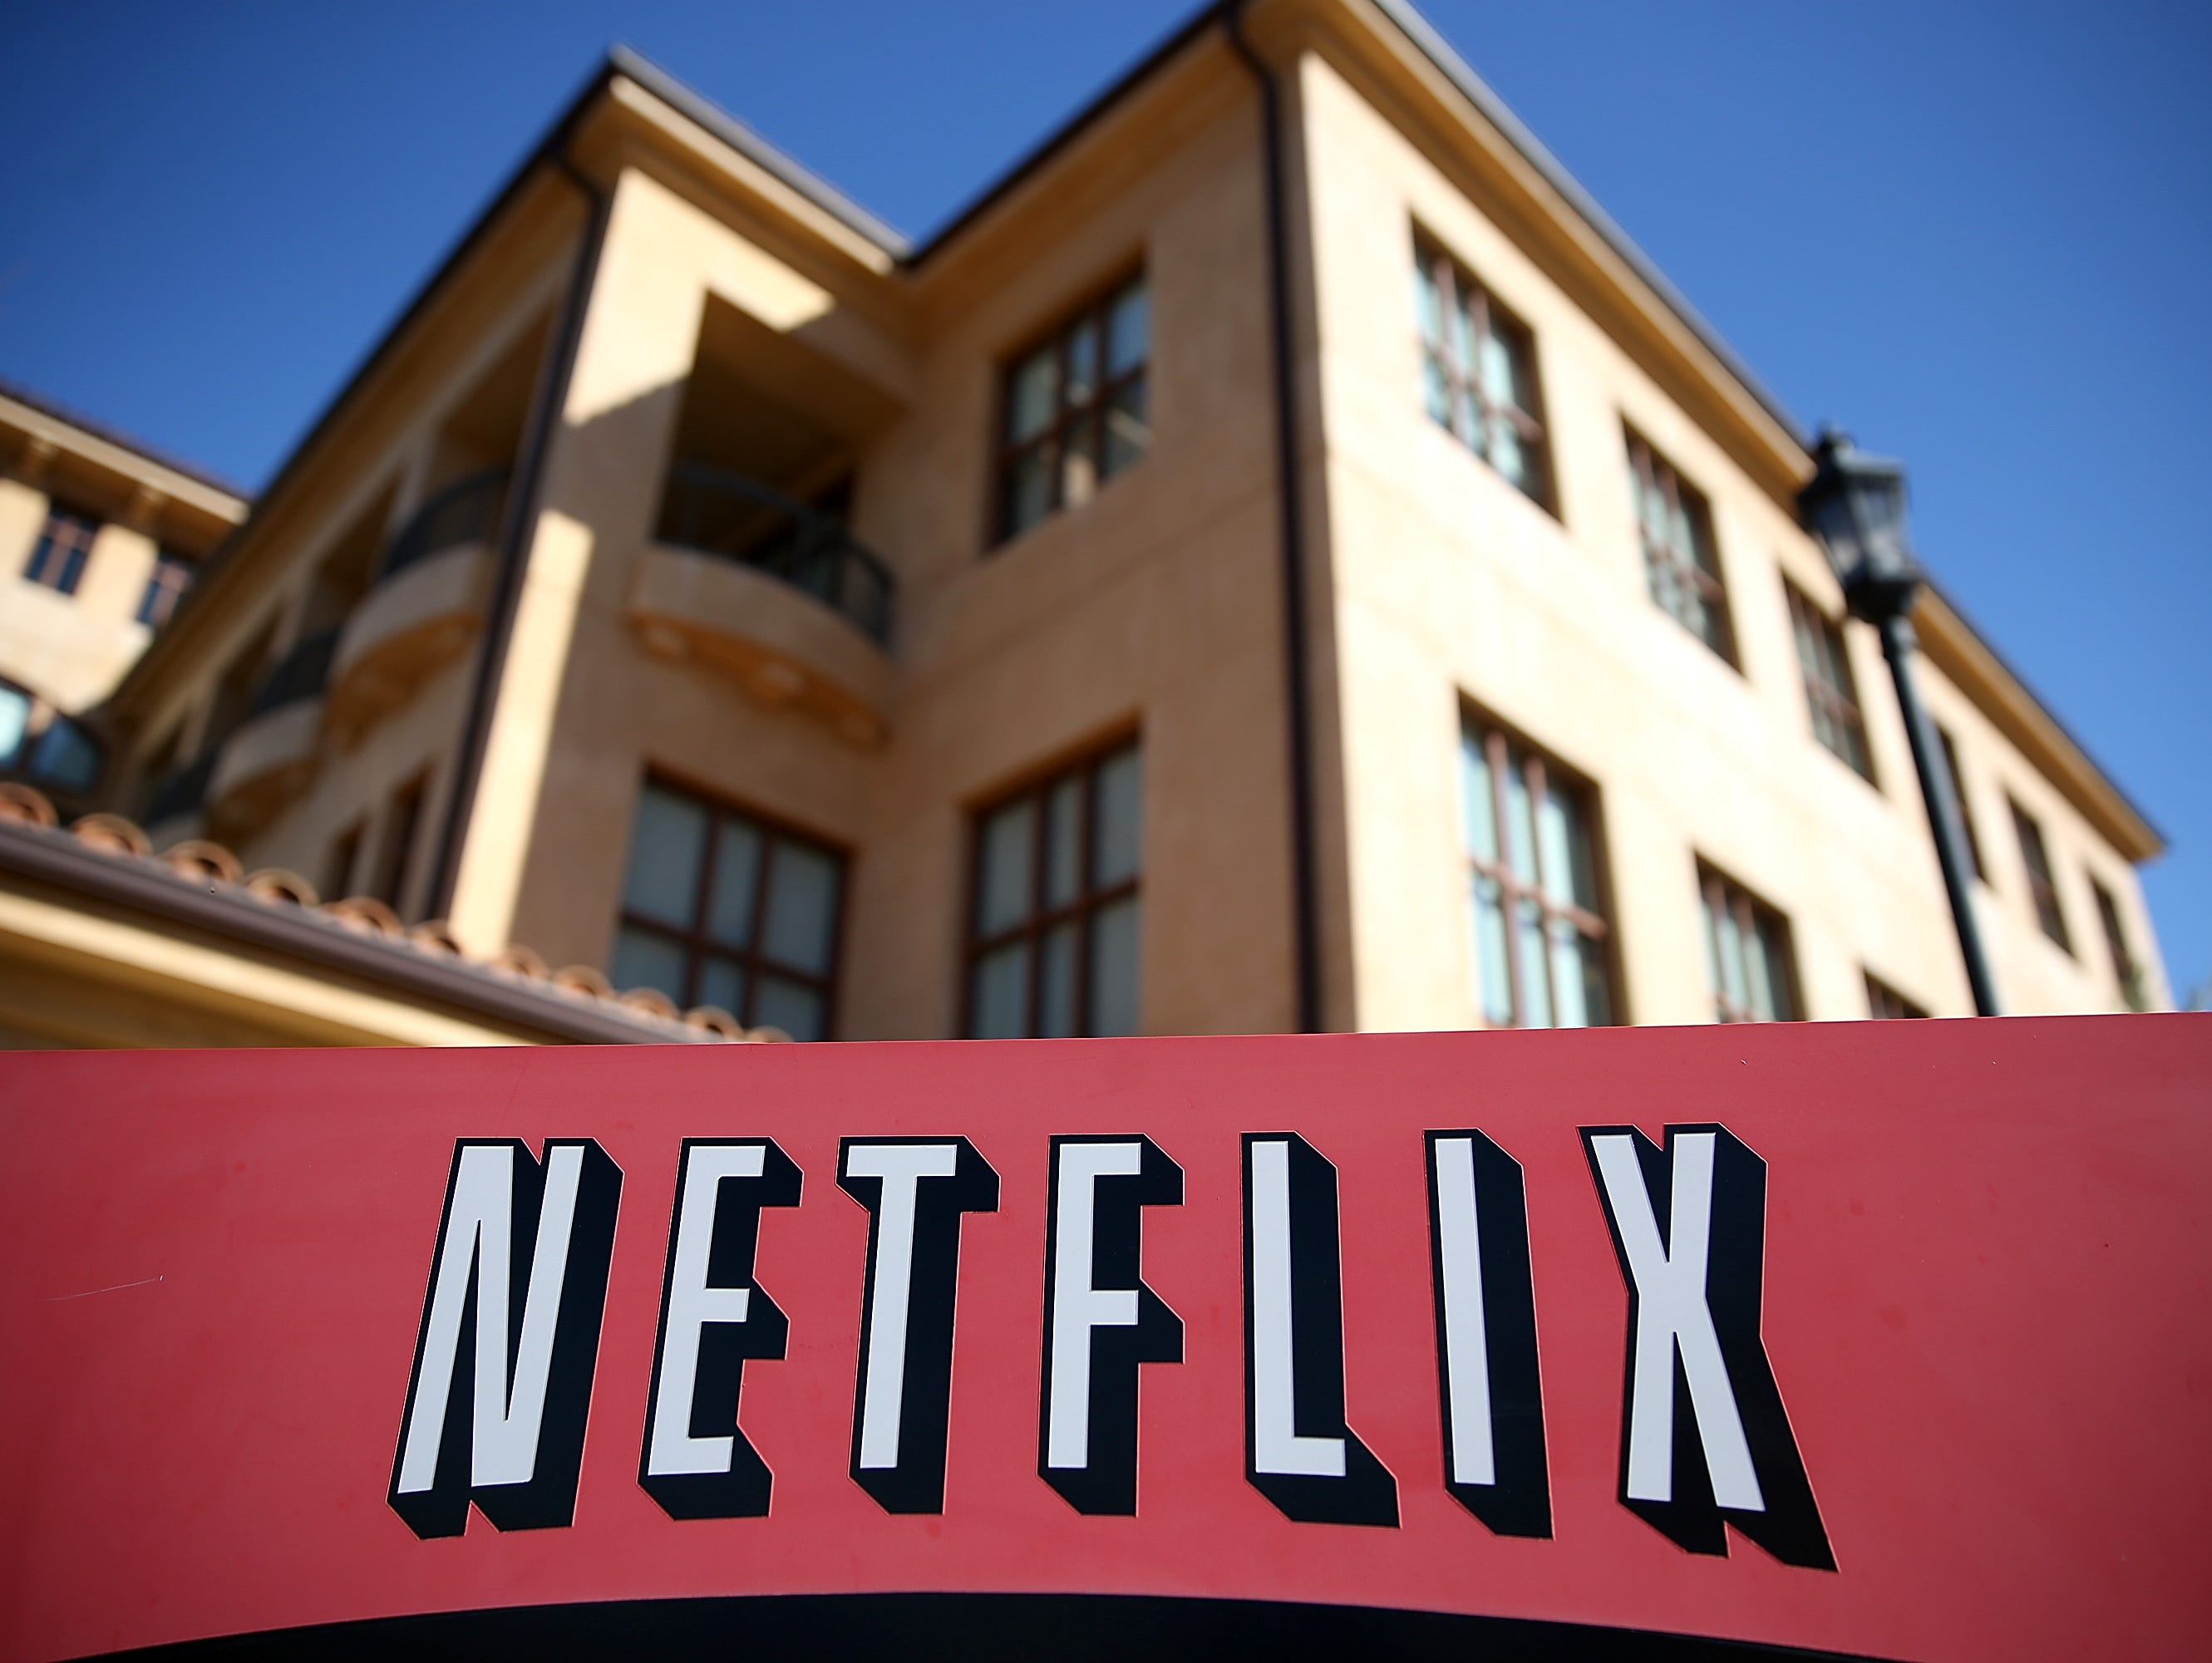 According to reports in April, Netflix has announced that it has topped 60 million subscribers, exceeding expectations.